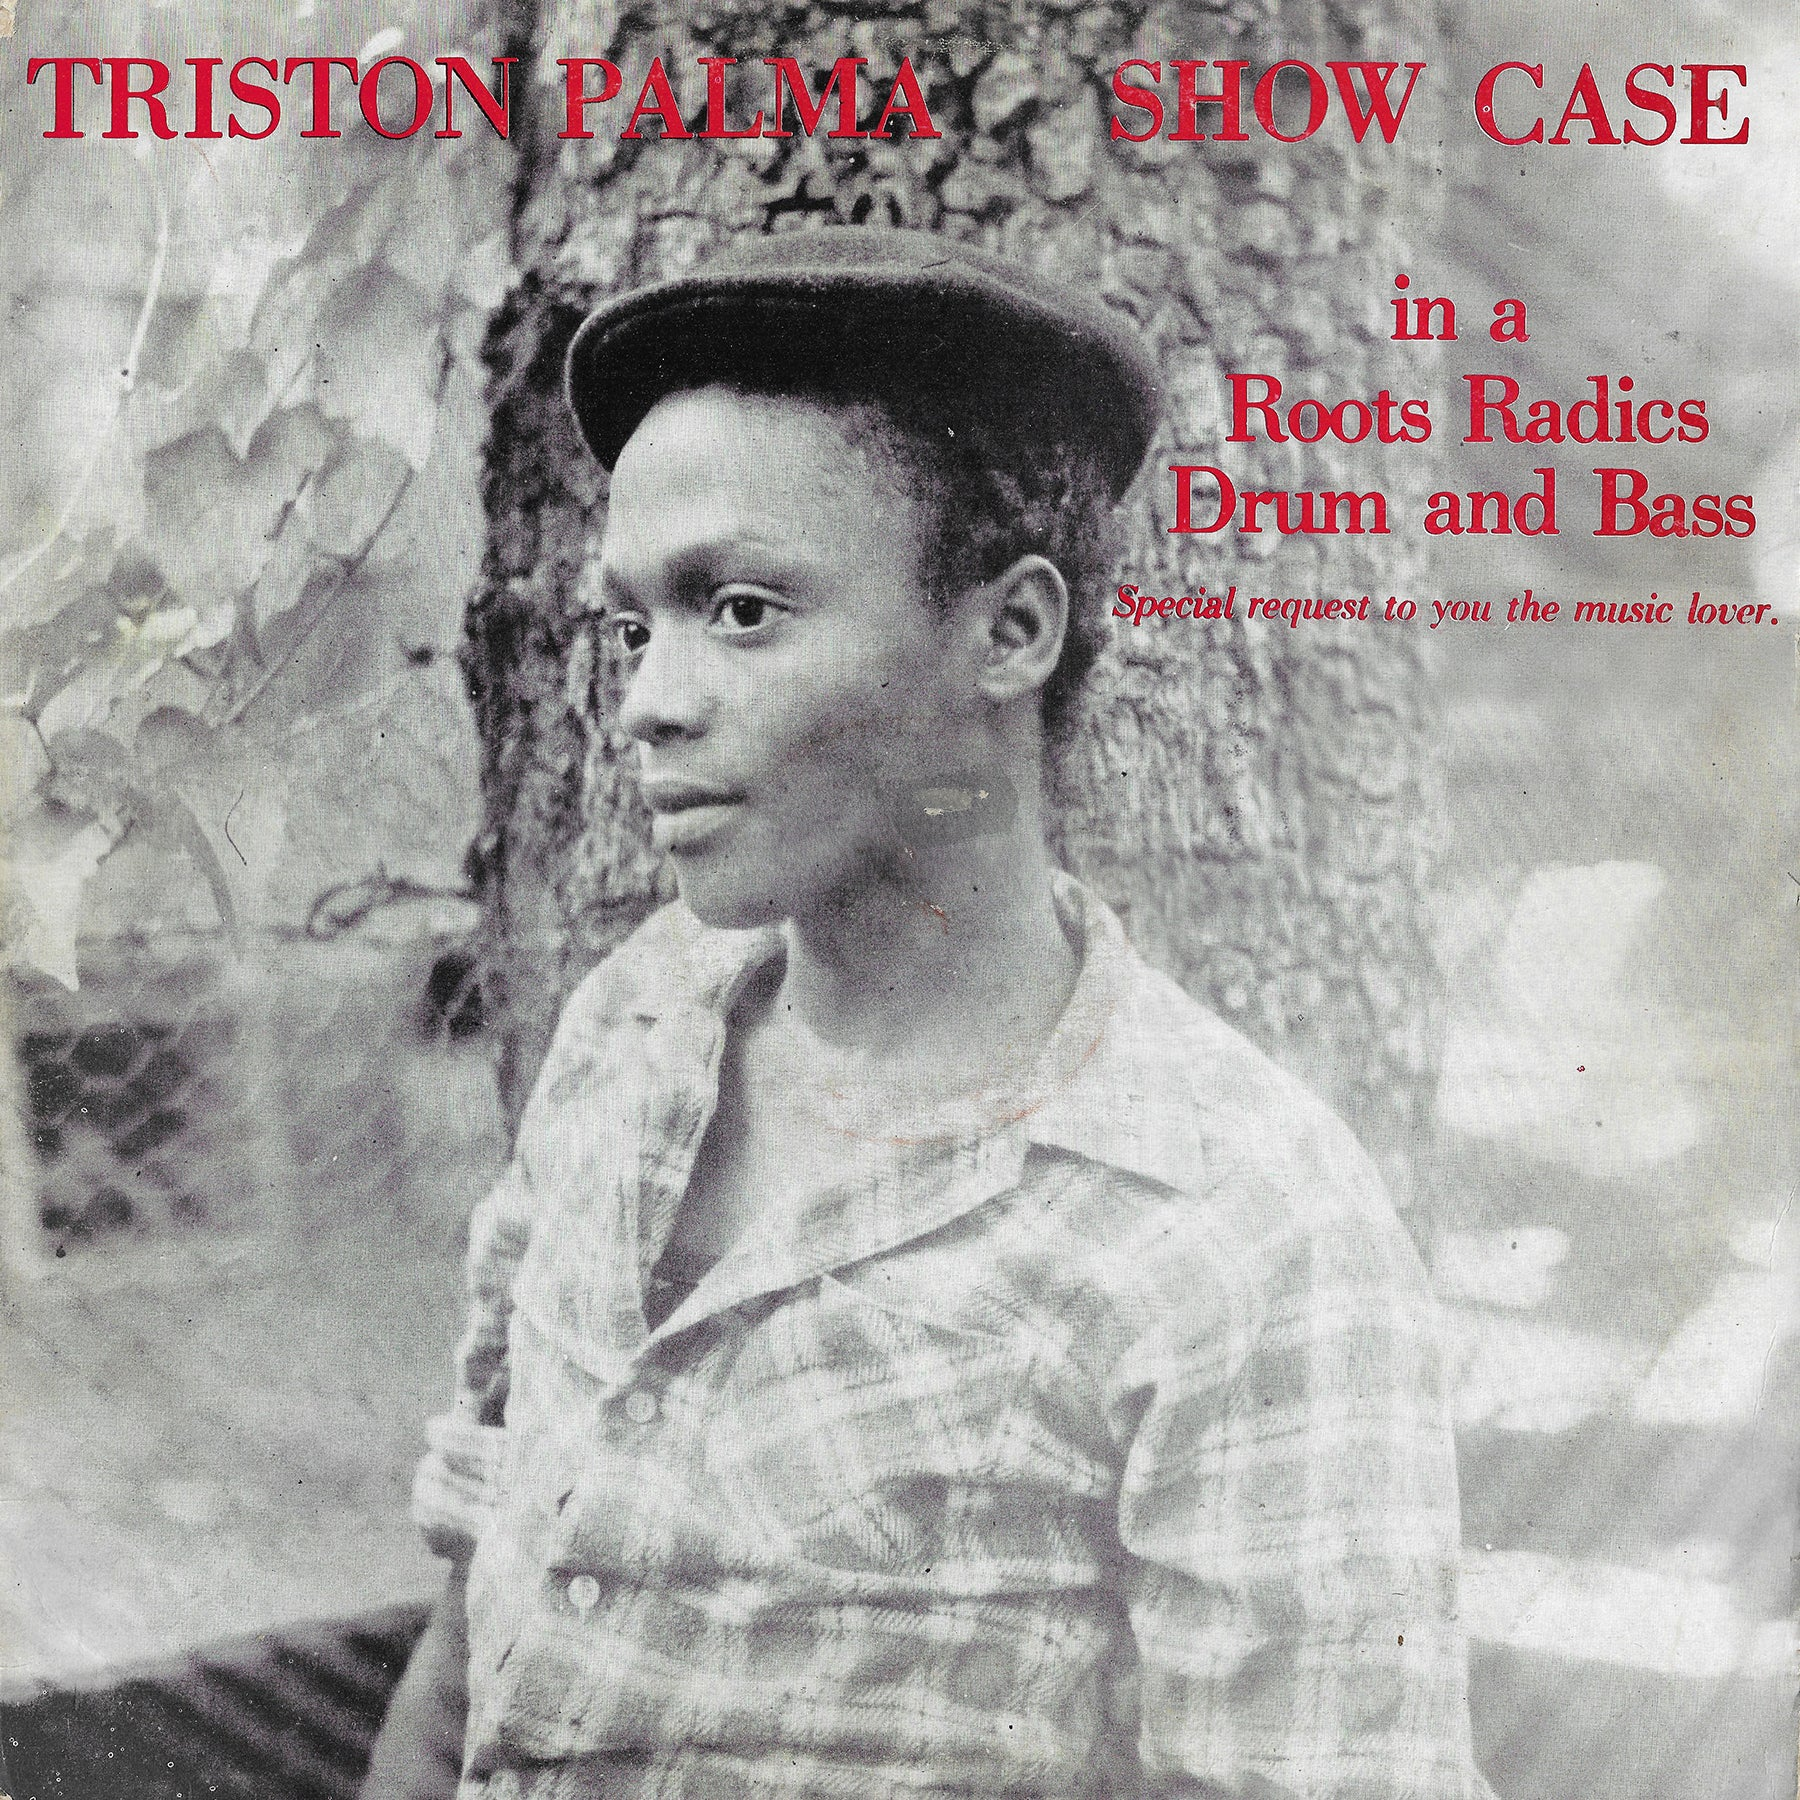 Triston Palma - Show Case (In A Roots Radics Drum And Bass)